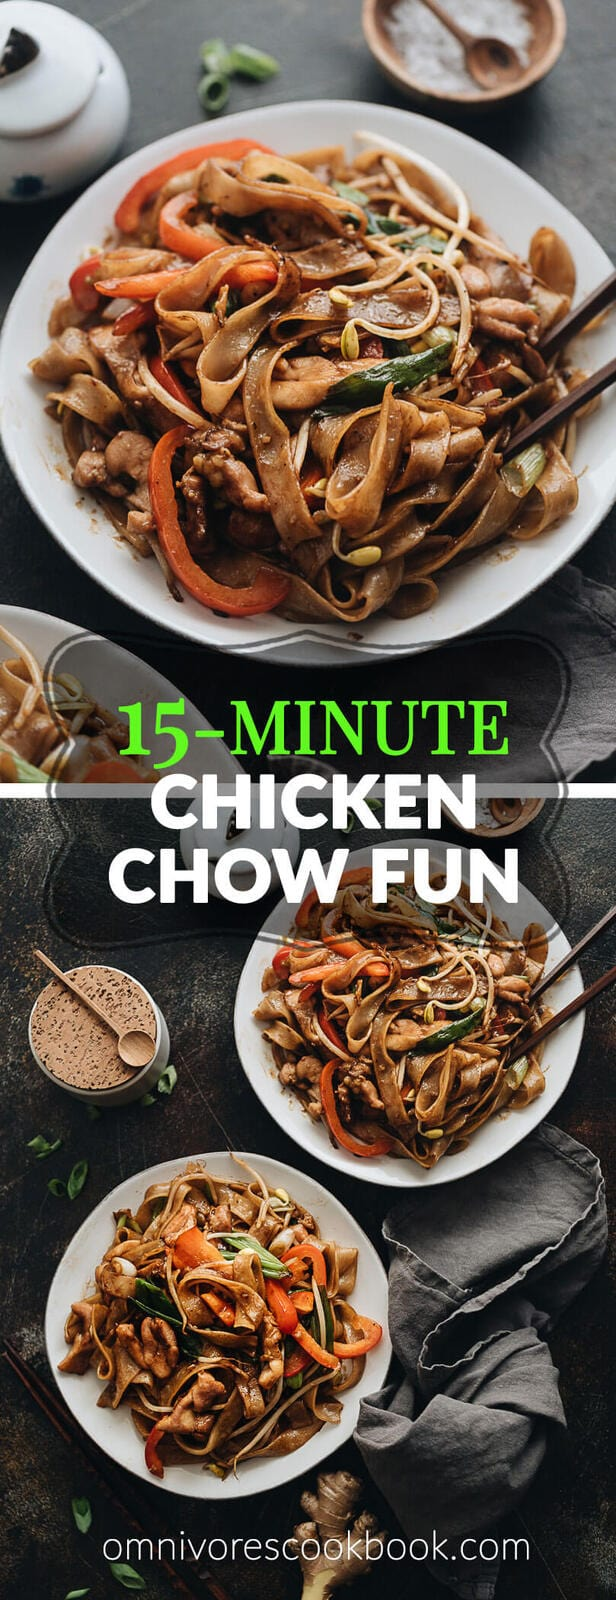 15-Minute Chicken Chow fun - This chicken fried noodle recipe is super fast to make and yields restaurant-style results. The dish is loaded with fat rice noodles, tender chicken, and crisp veggies. No wok required! #recipe #comfortfood #stirfry #glutenfree